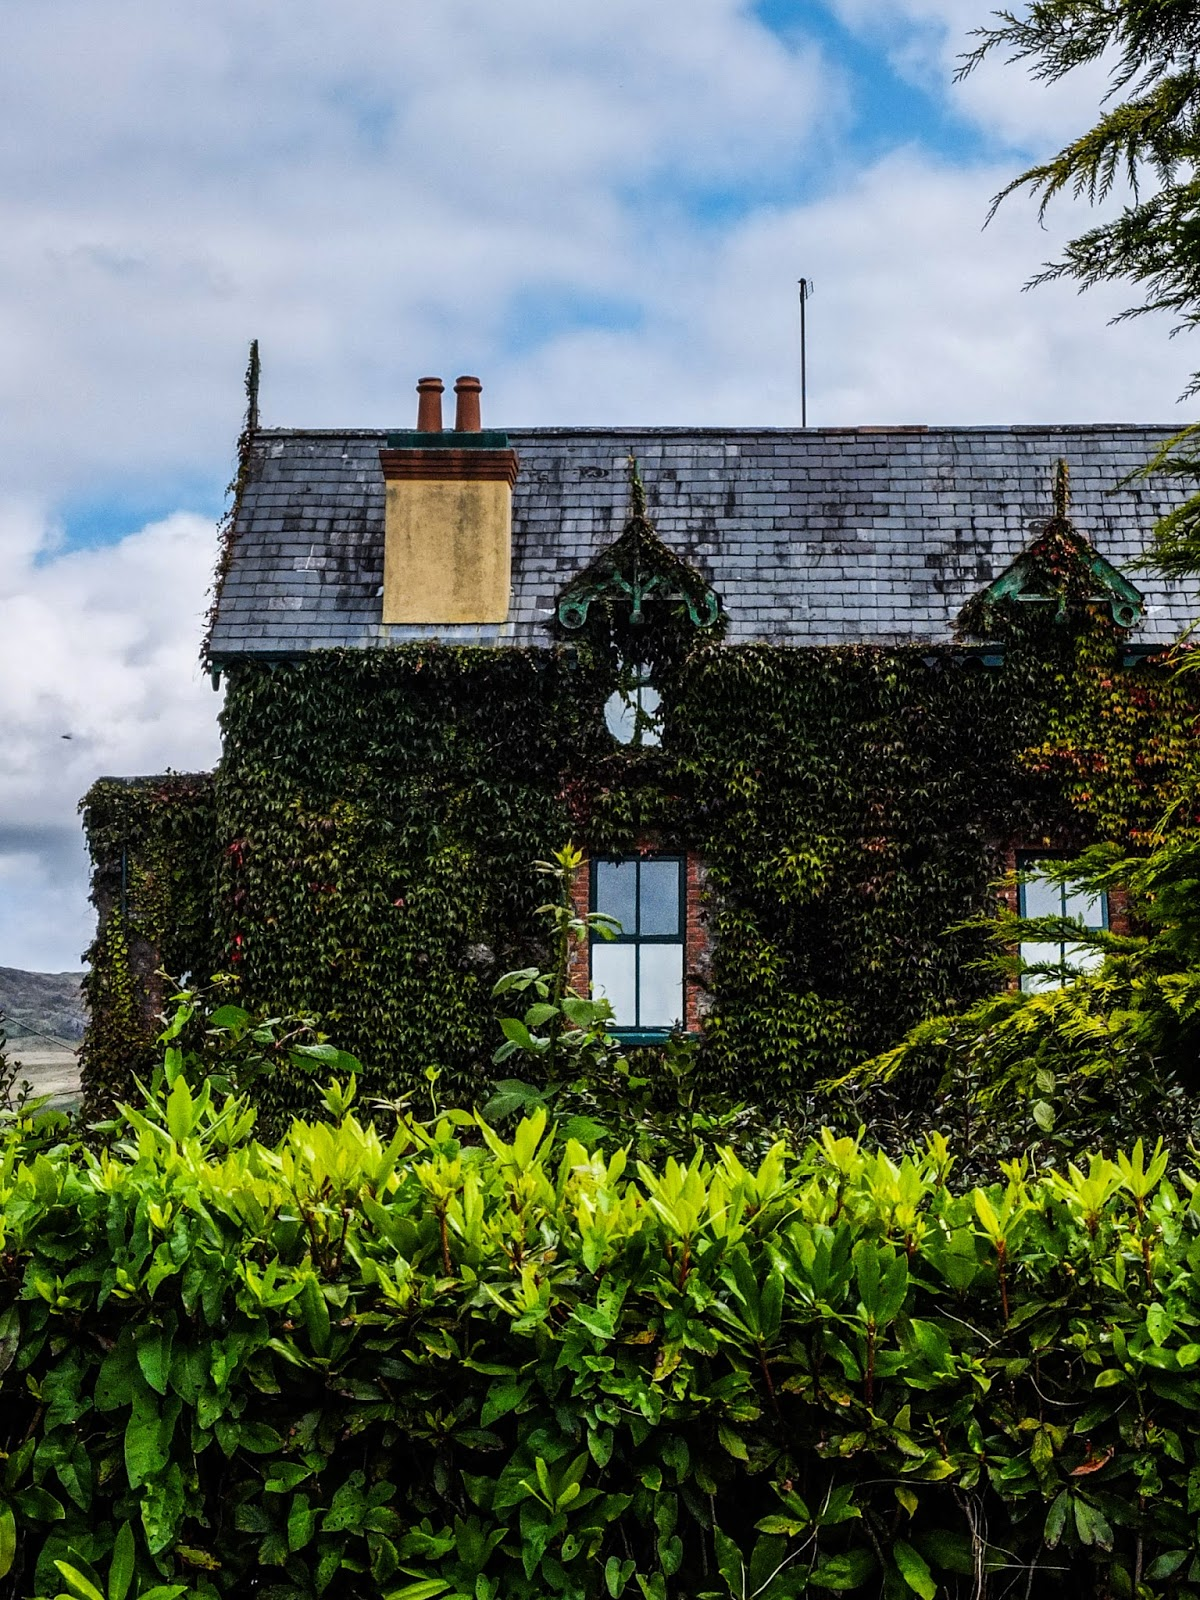 A red brick building covered with ivy in Glengariff, Co.Cork.